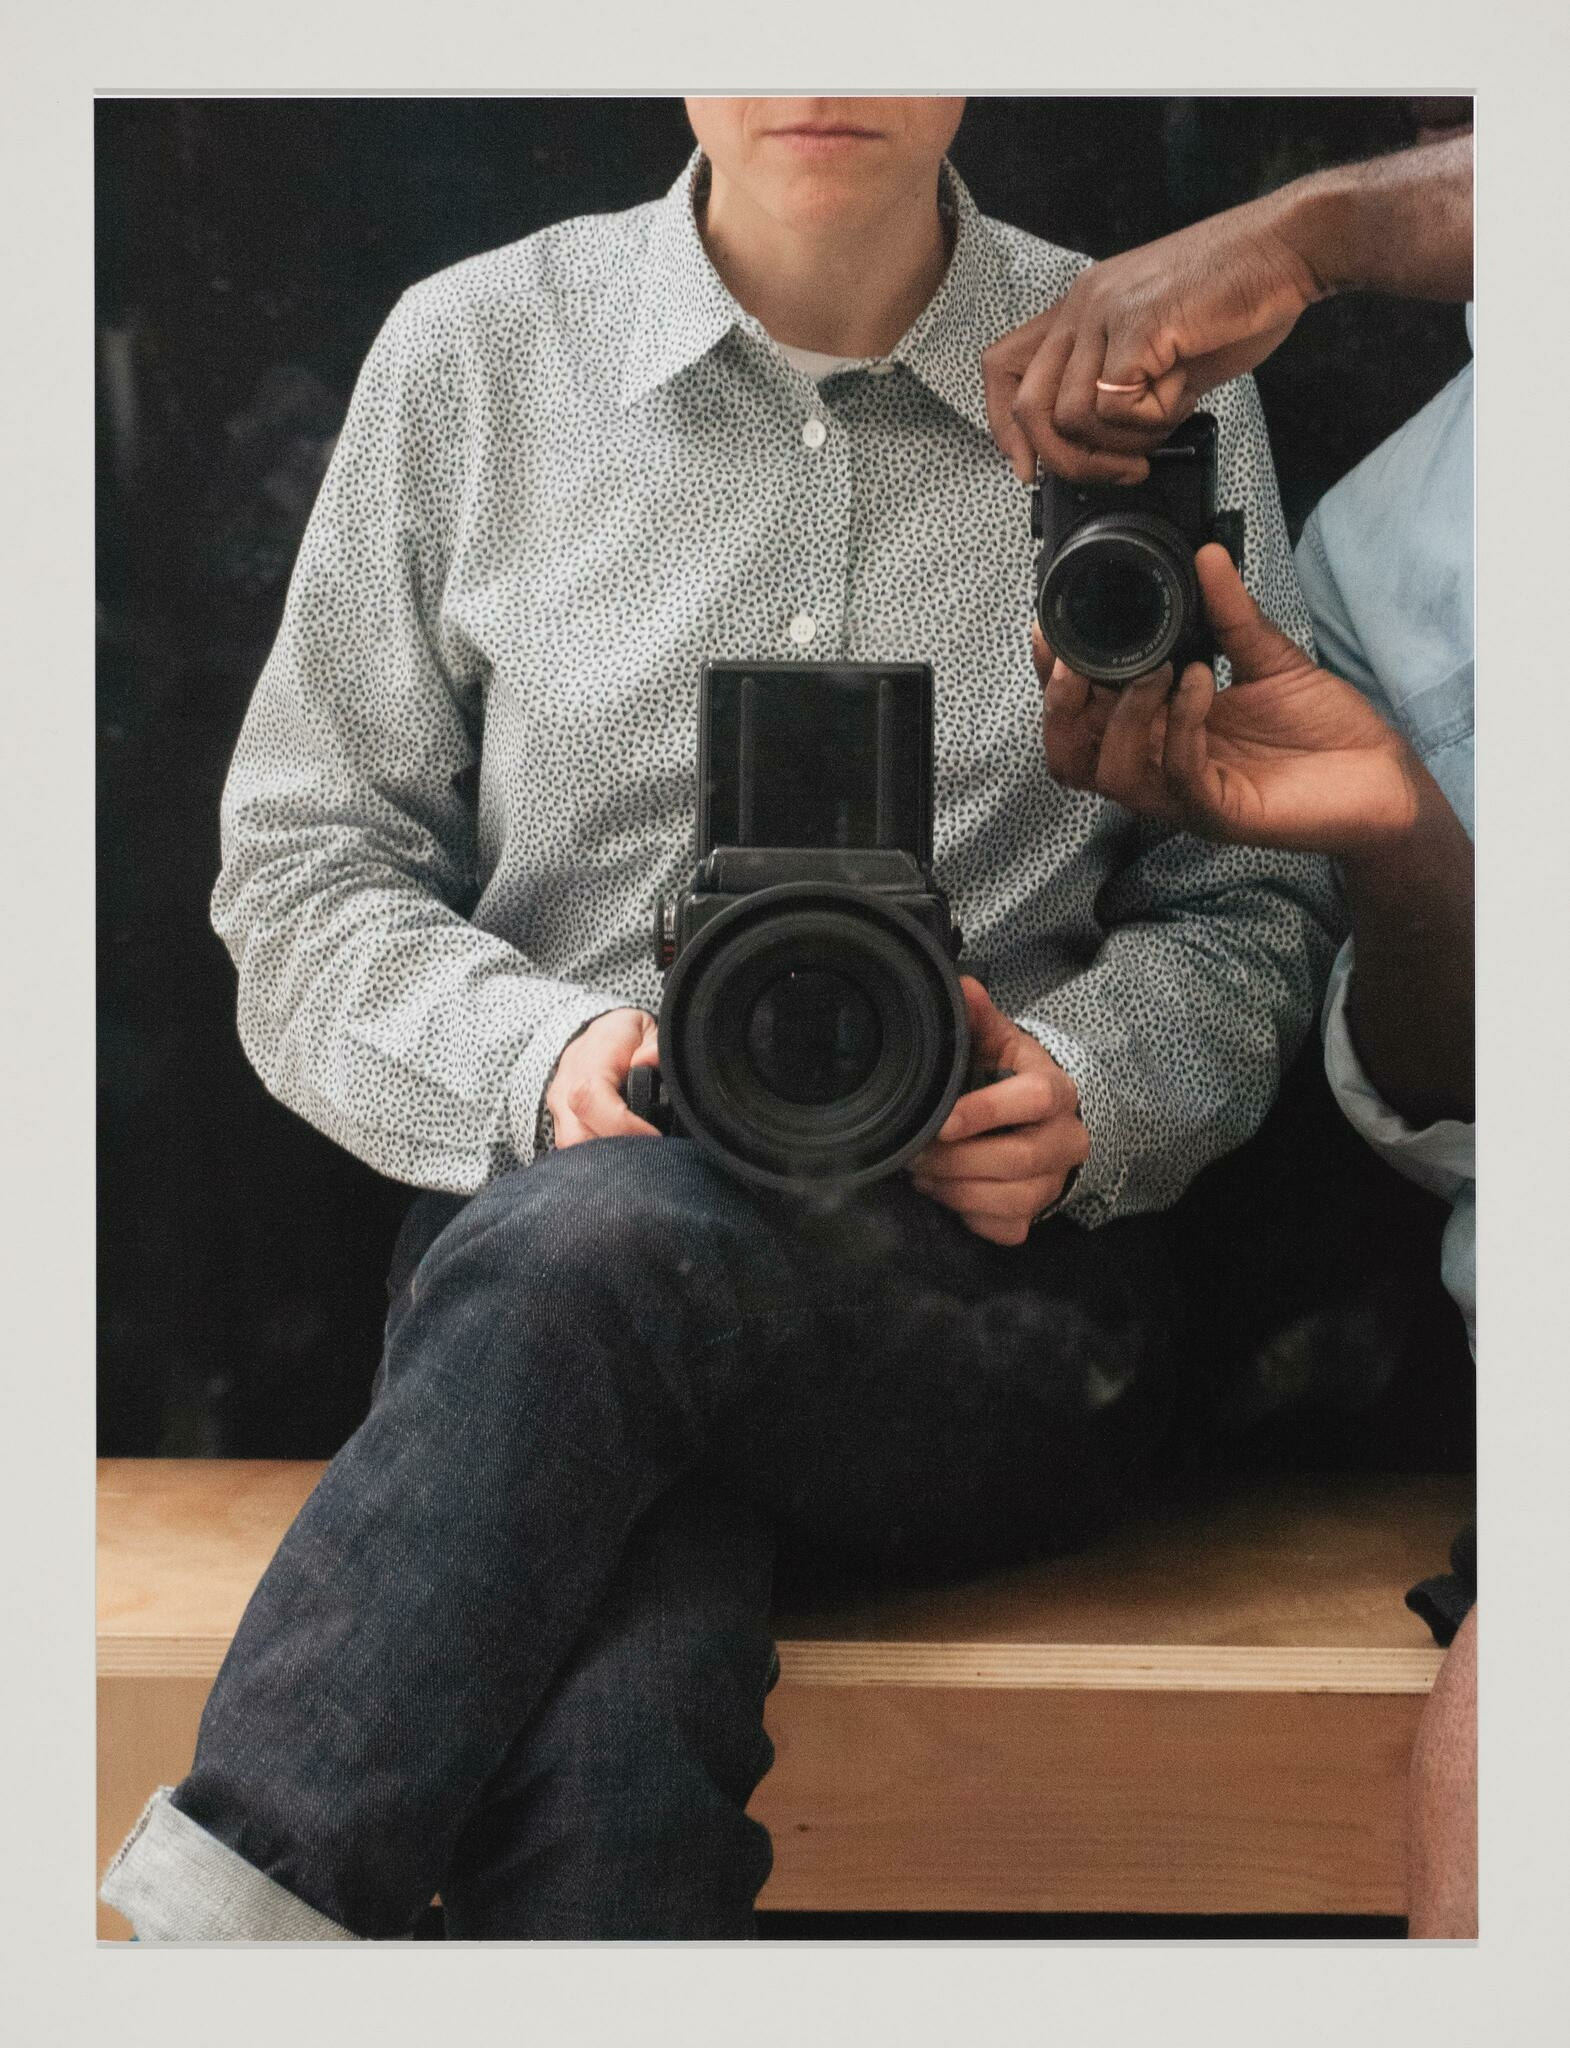 A seated white person holds a large camera in their lap, their face cropped, and a Black person reaches into the frame holding a smaller camera